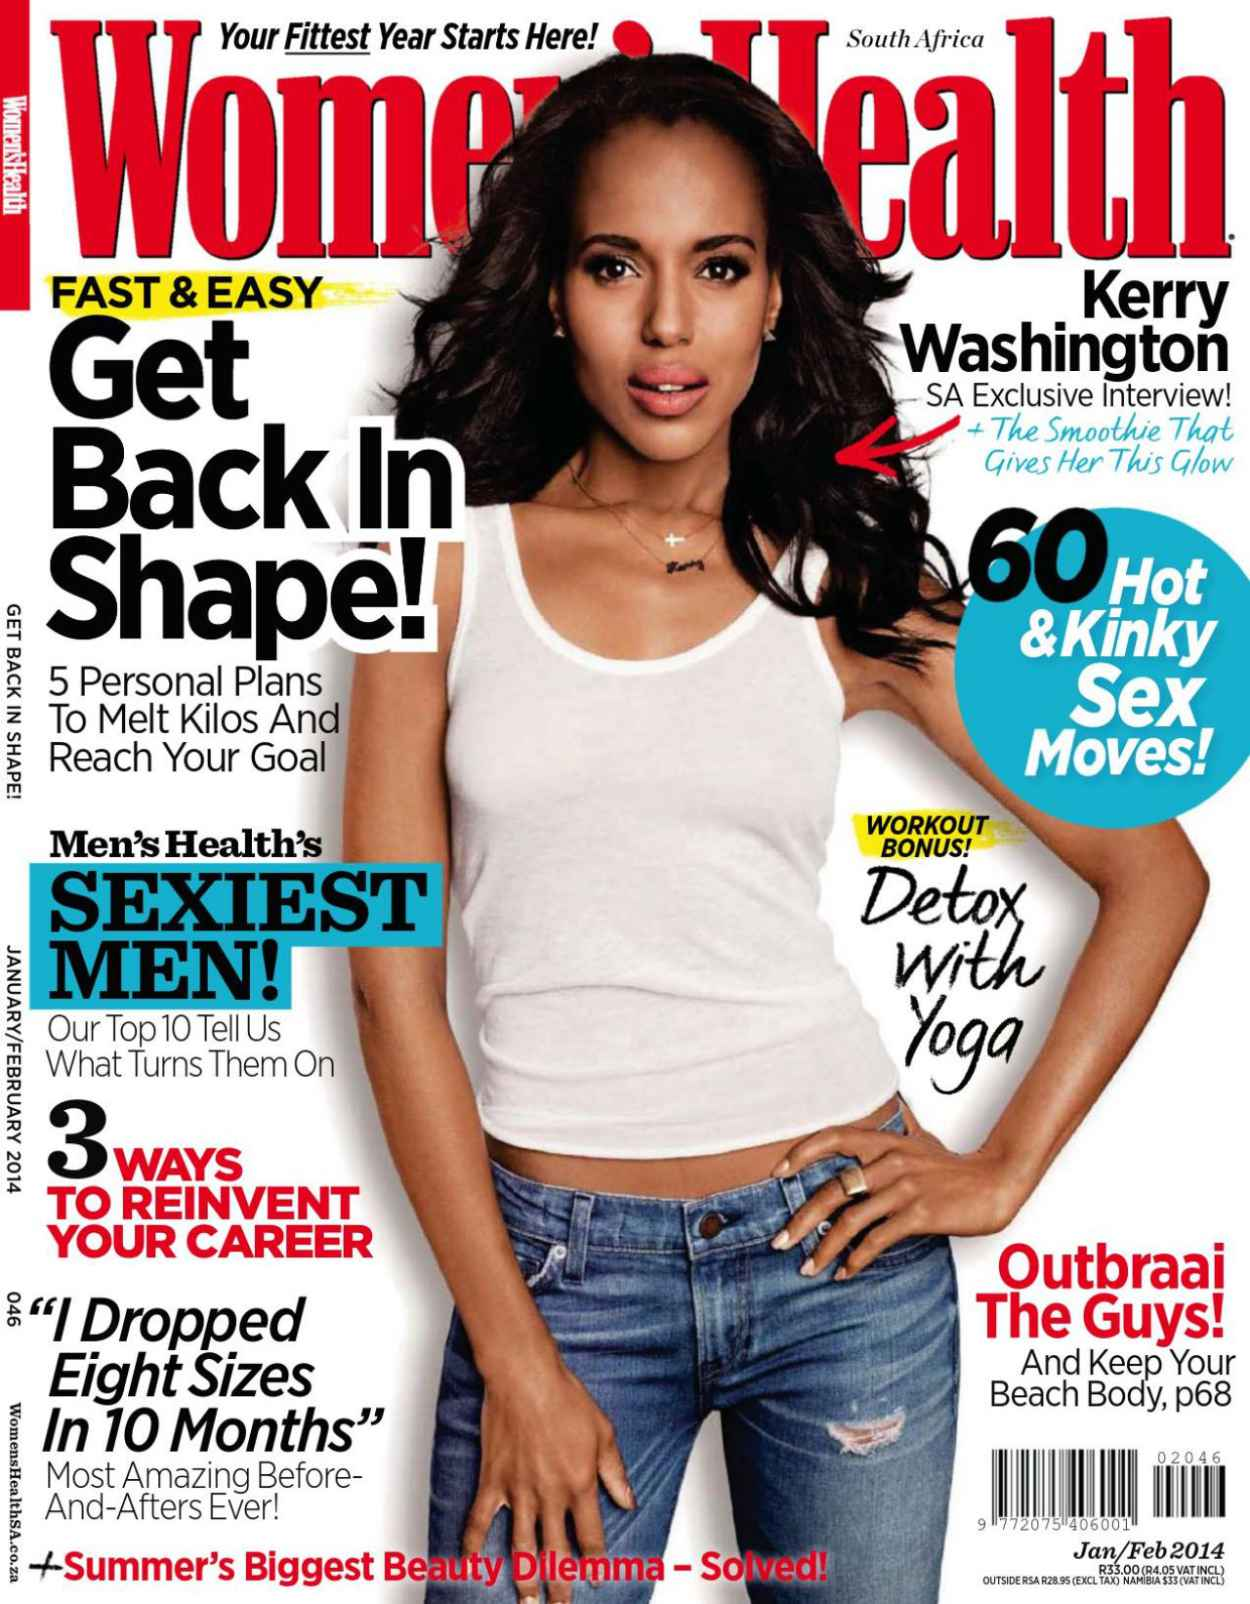 Kerry Washington - WOMENS HEALTH Magazine (South Africa) - January/February 2015 Issue-1